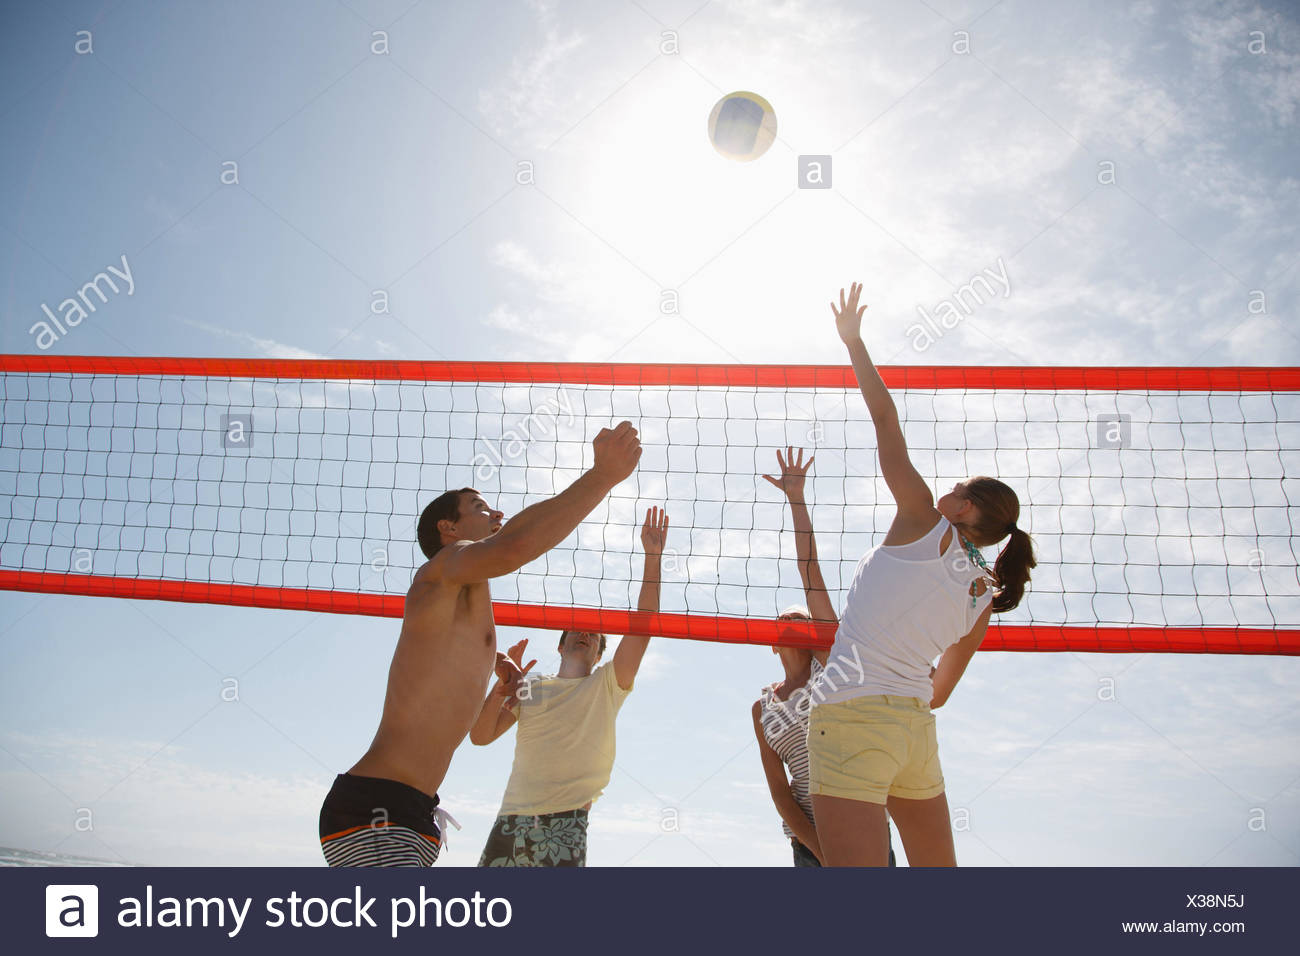 Les amis jouer au volley-ball Photo Stock